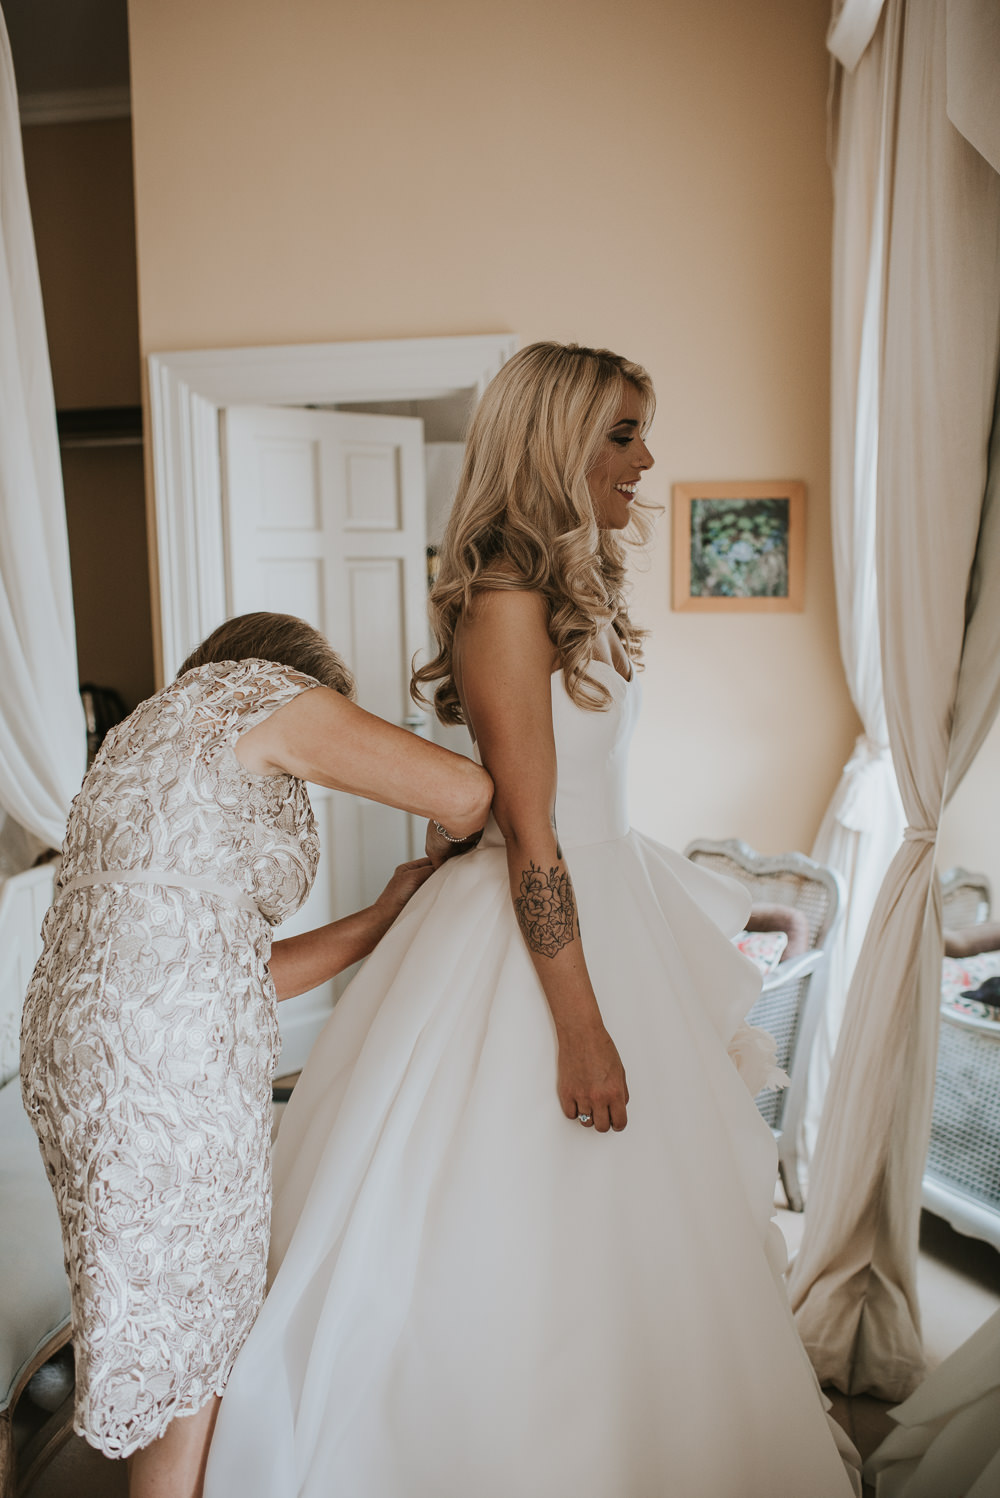 Dress Gown Bride Bridal Strapless Sweetheart Maggie Sottero Princess Millhouse Wedding Louise Scott Photography